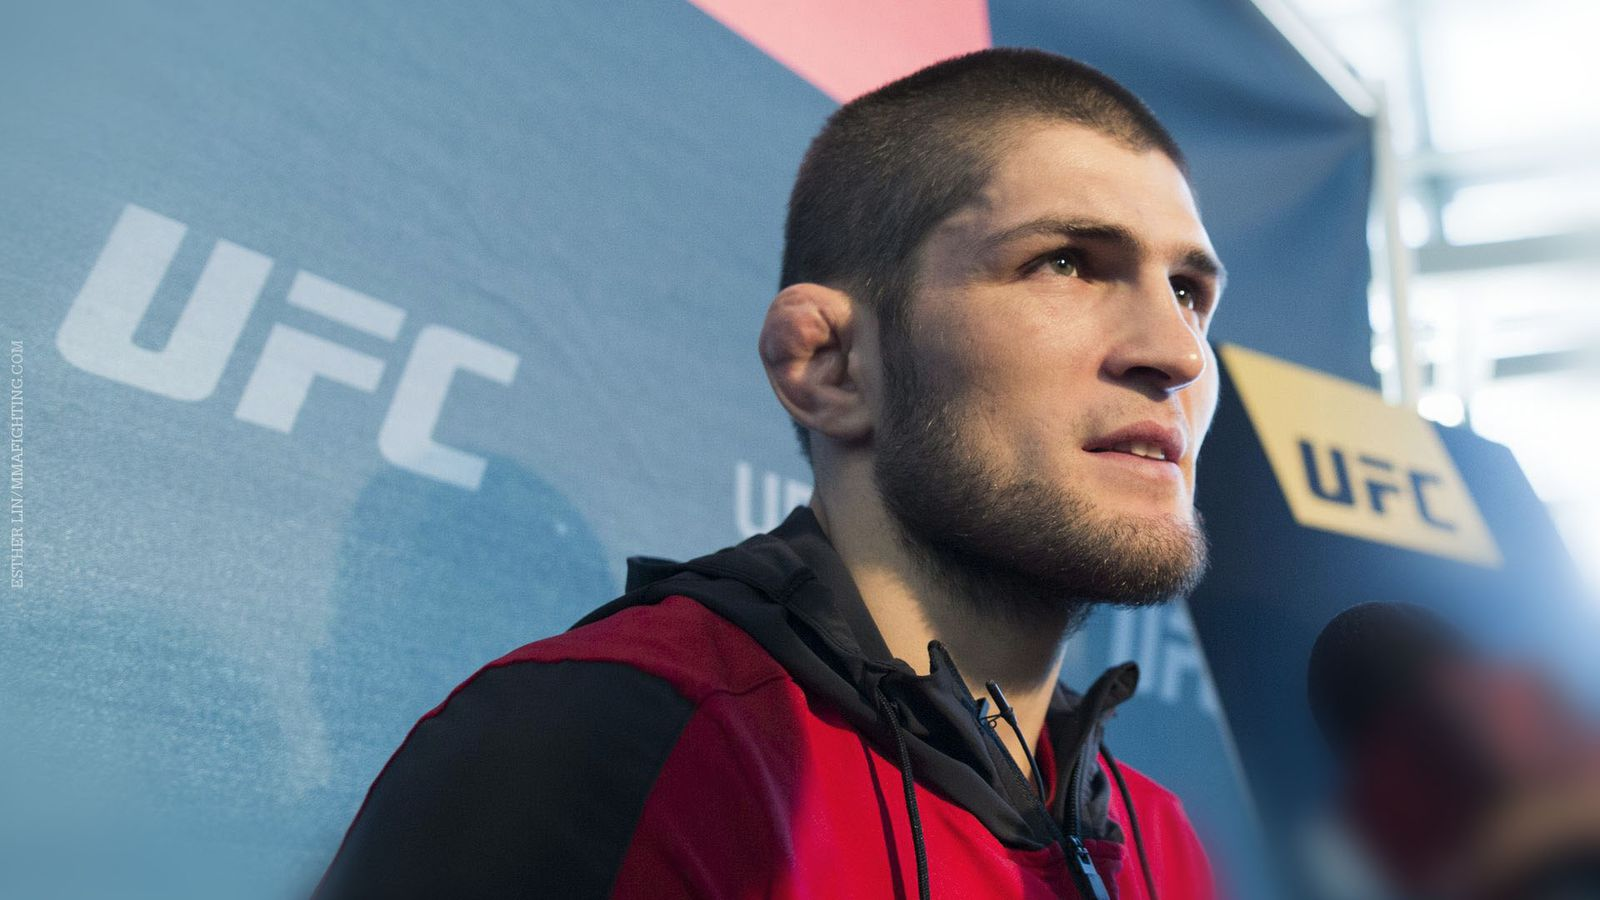 UFC Prague early weighin results LIVE ceremonial video